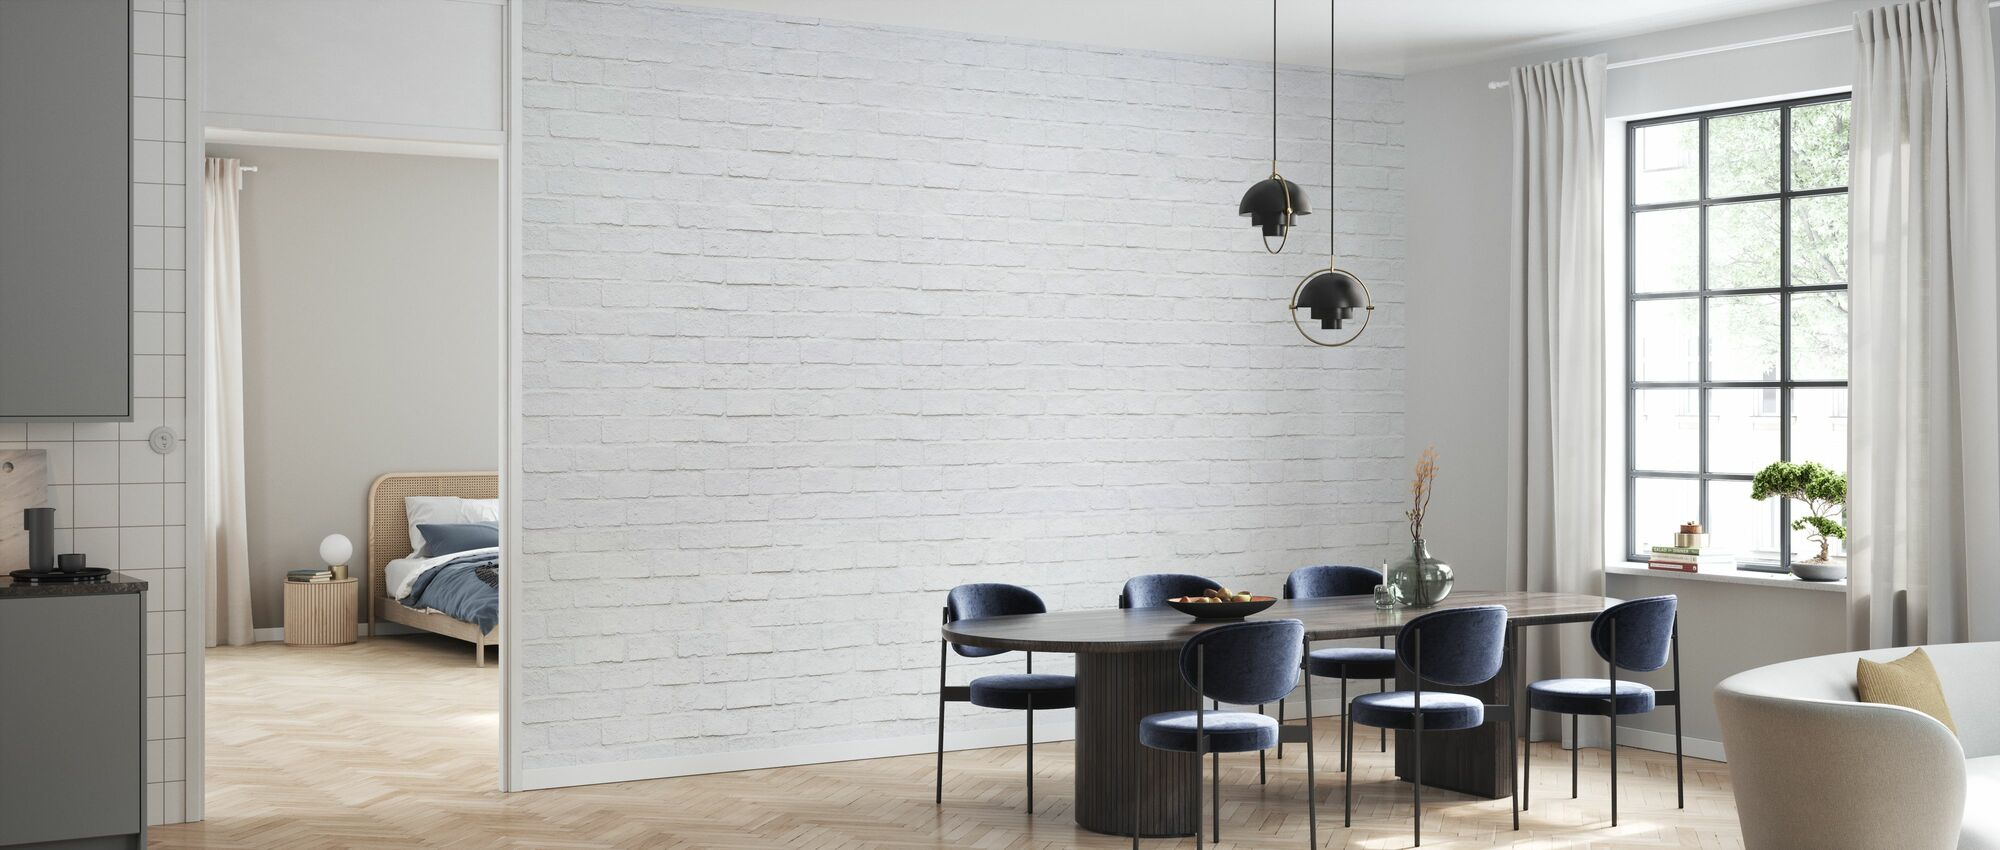 Modern Brick Wall - Wallpaper - Kitchen